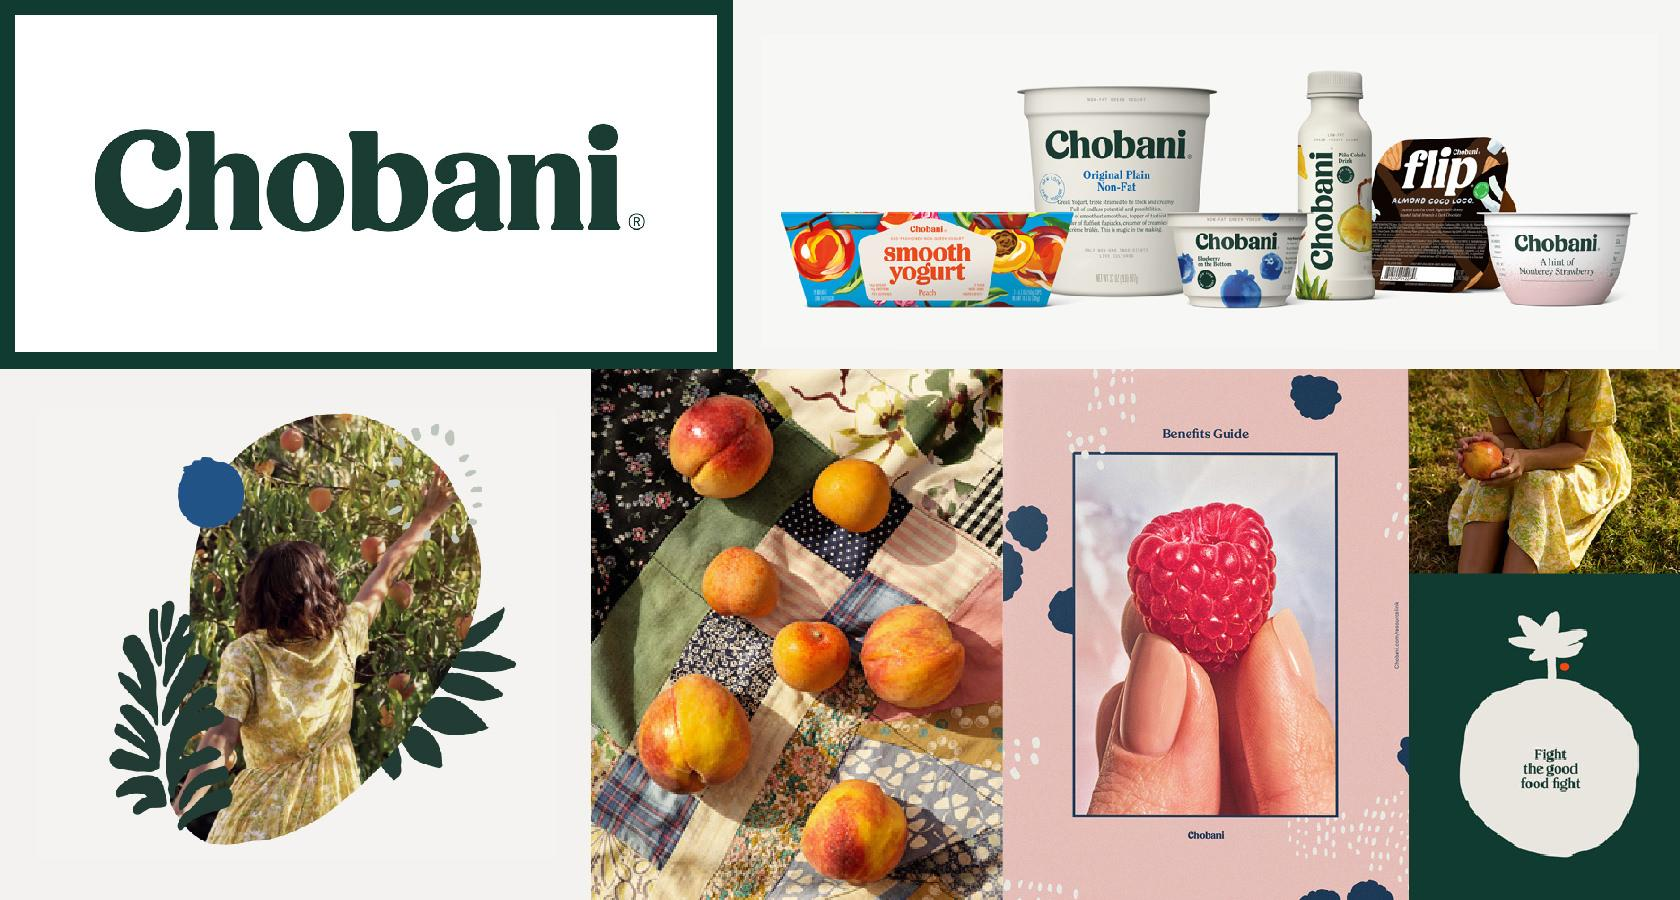 Chobani's rebranding proposal mapped out their future.